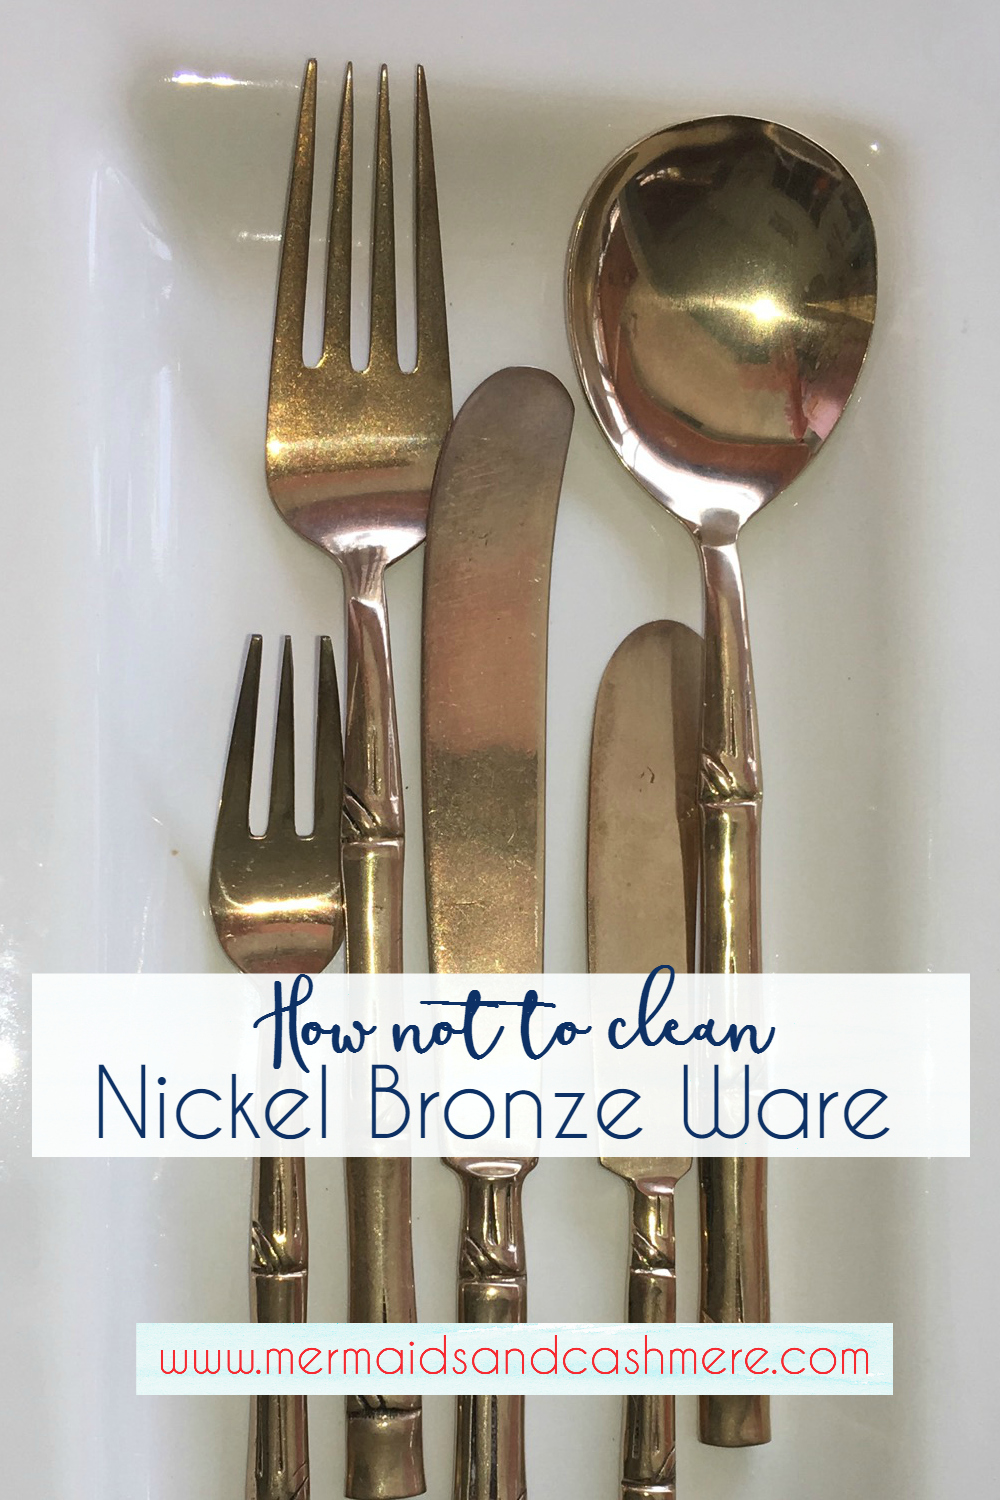 How to clean Nickel Bronze Silverware